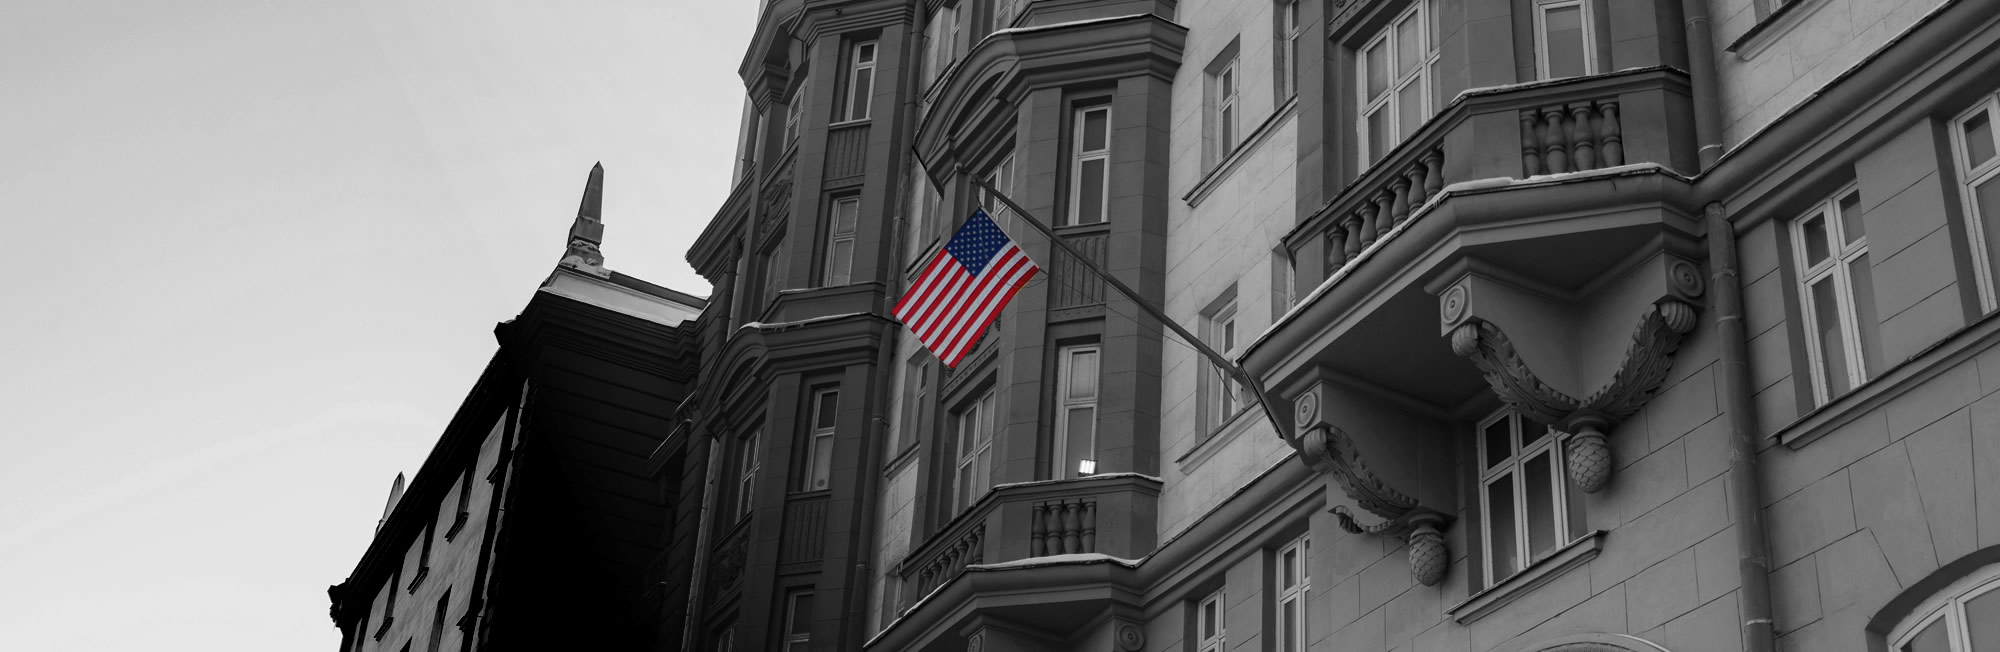 L-1B Visa Intracompany Transferee US Flag on Foreign Embassy